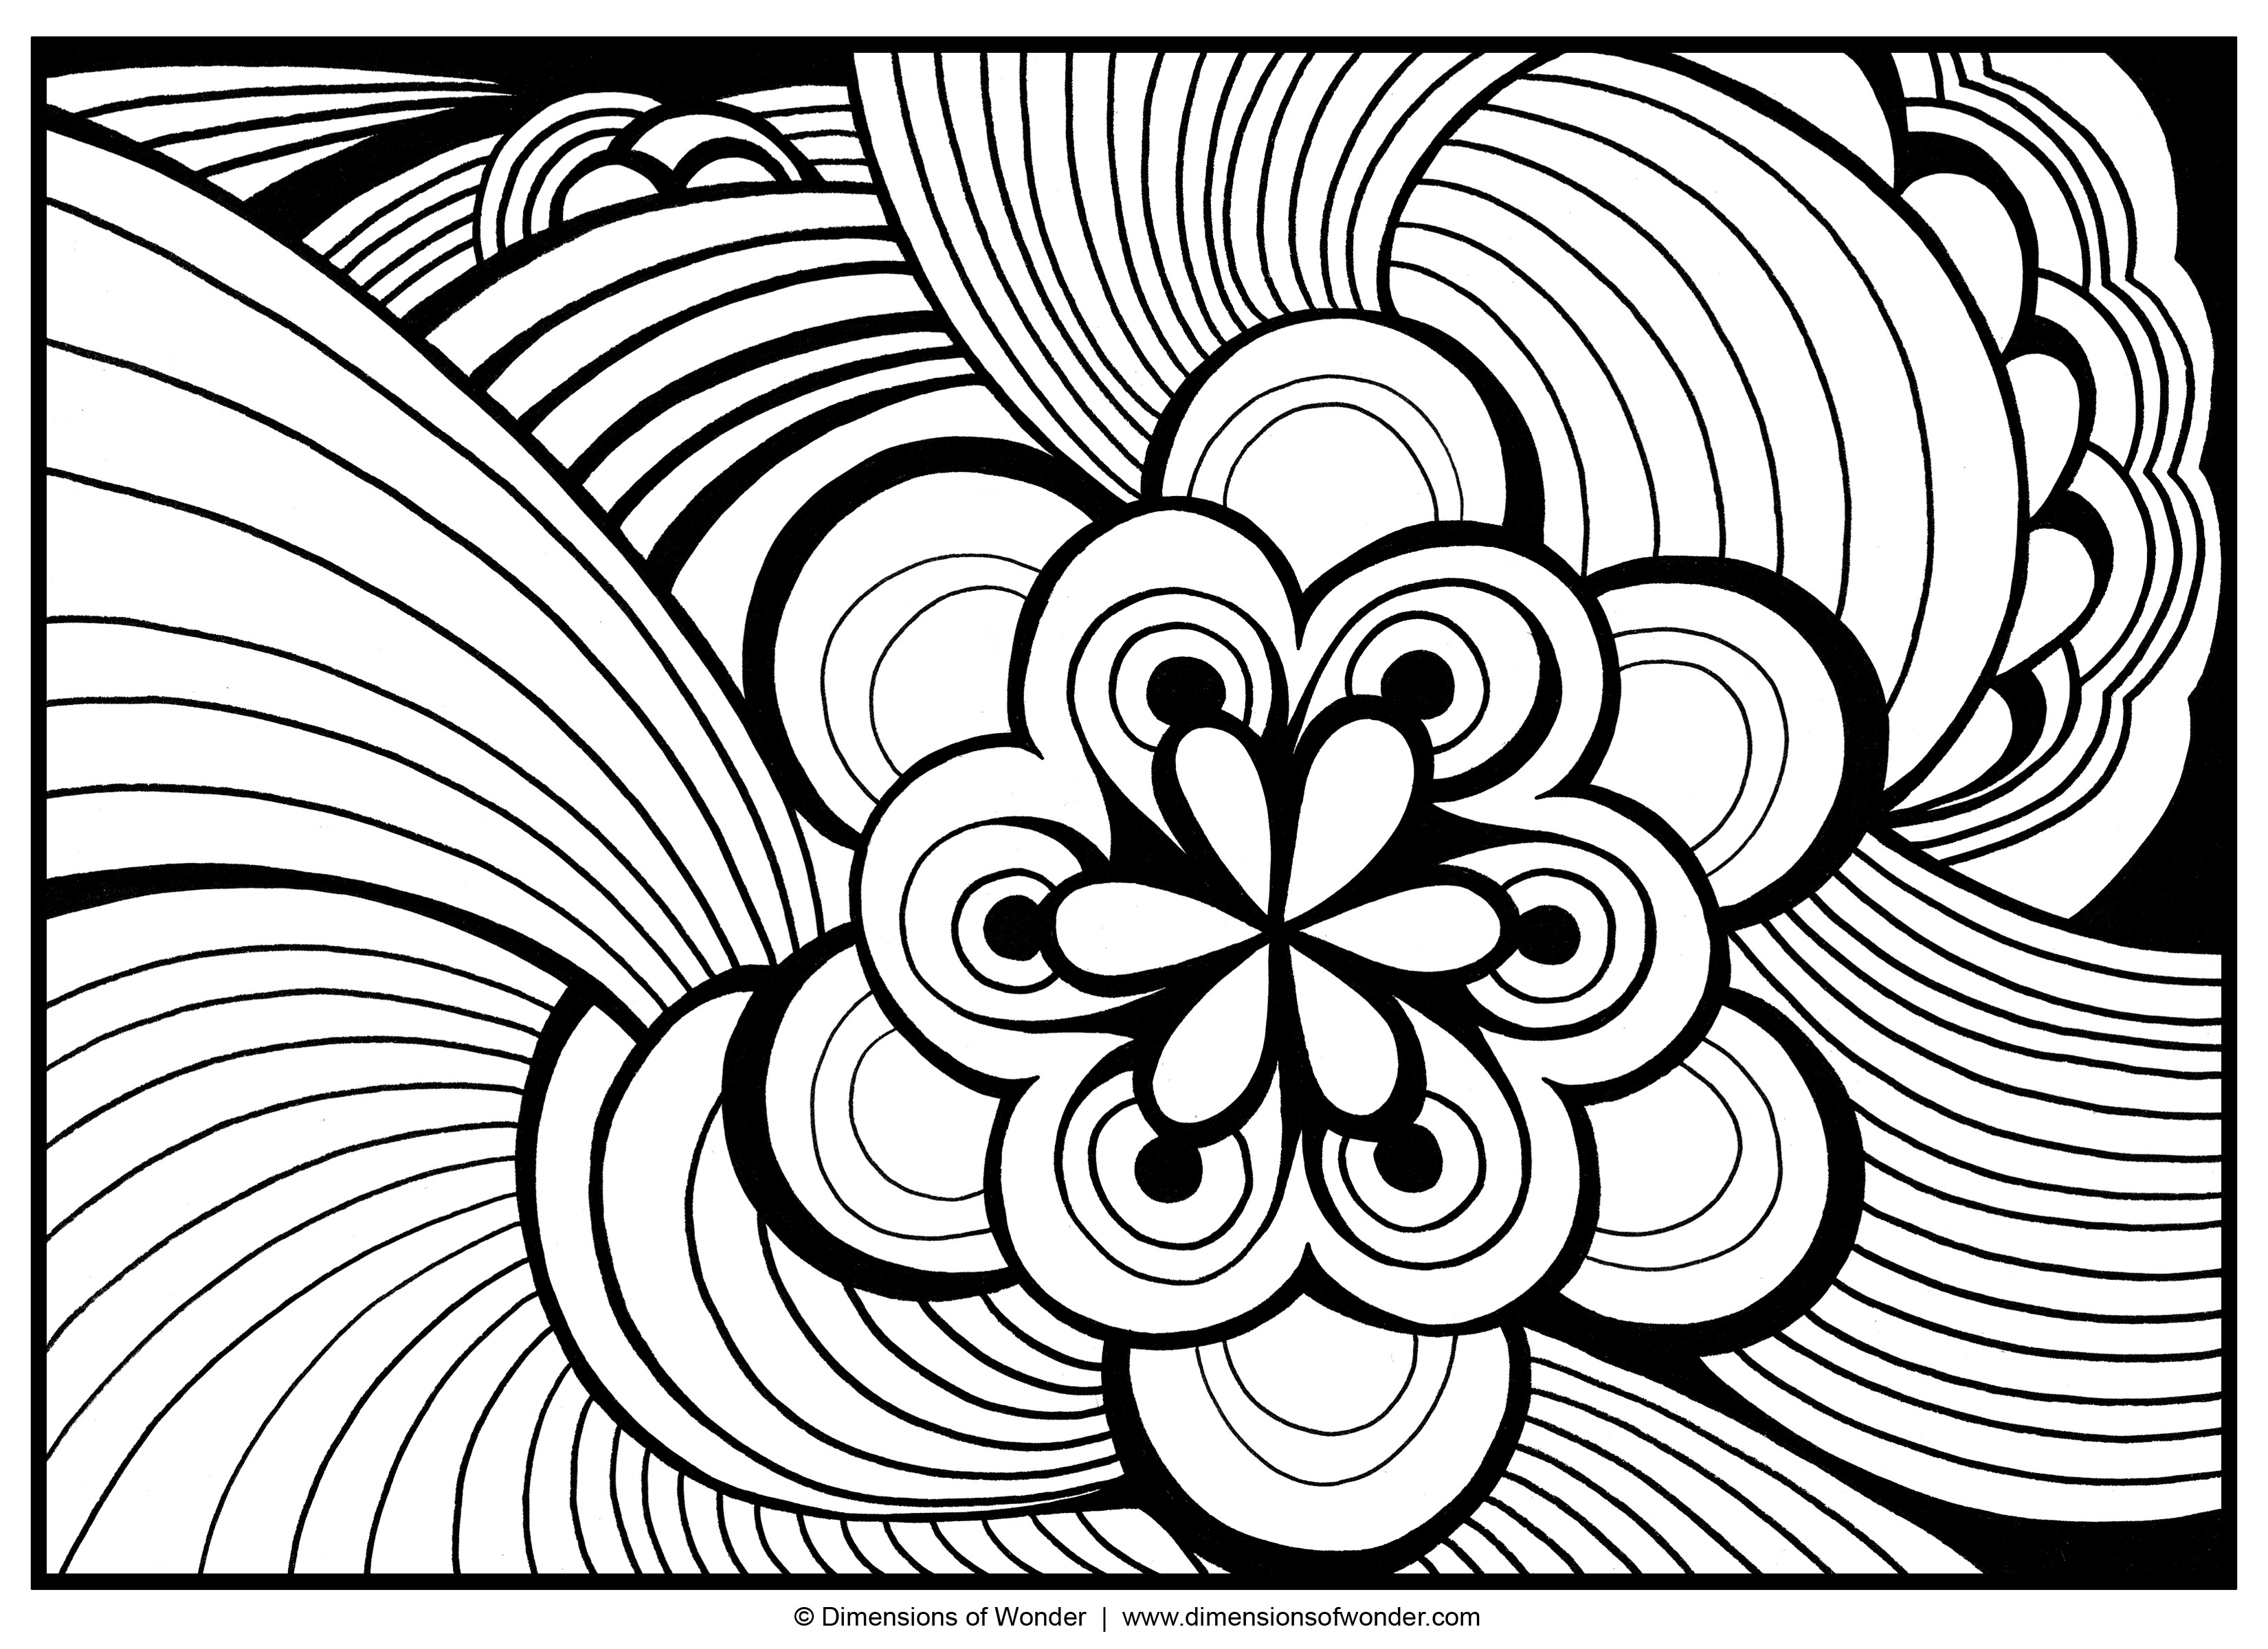 3300x2400 Abstract Coloring Pages With Wordsfree Coloring Pages For Kids